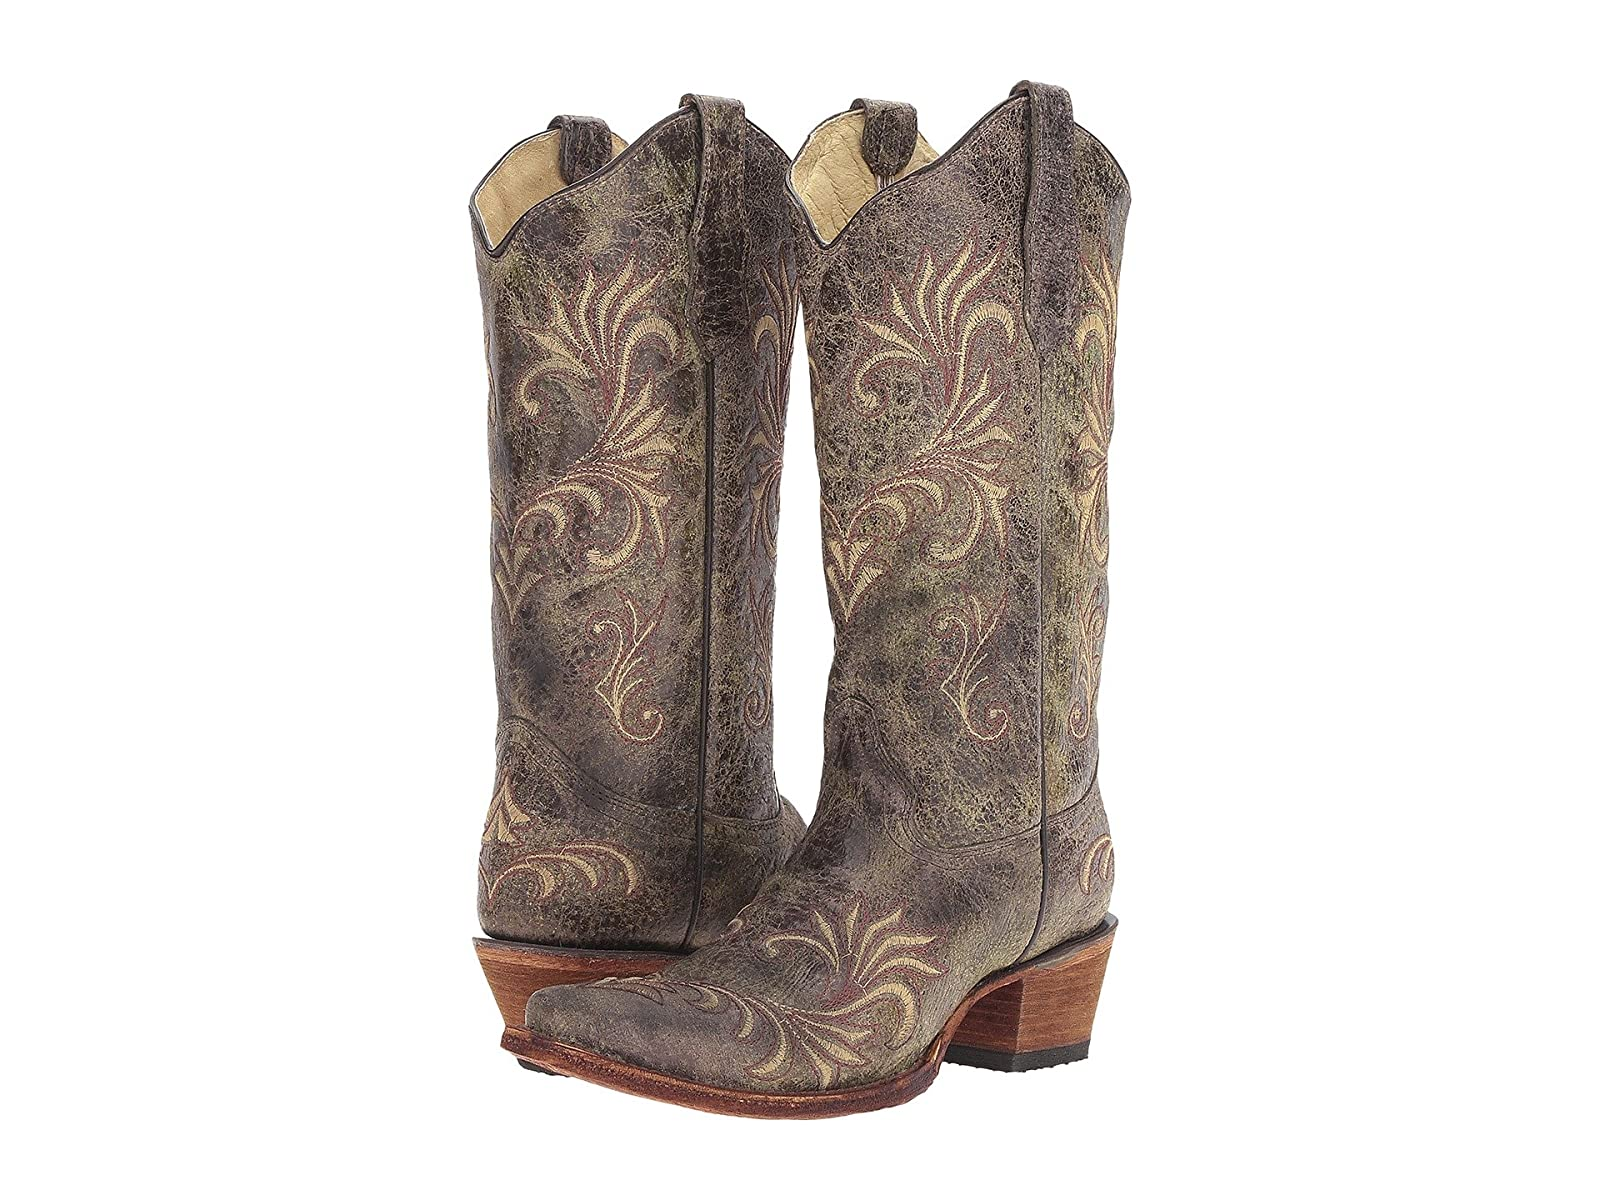 Corral Boots L5133Affordable and distinctive shoes